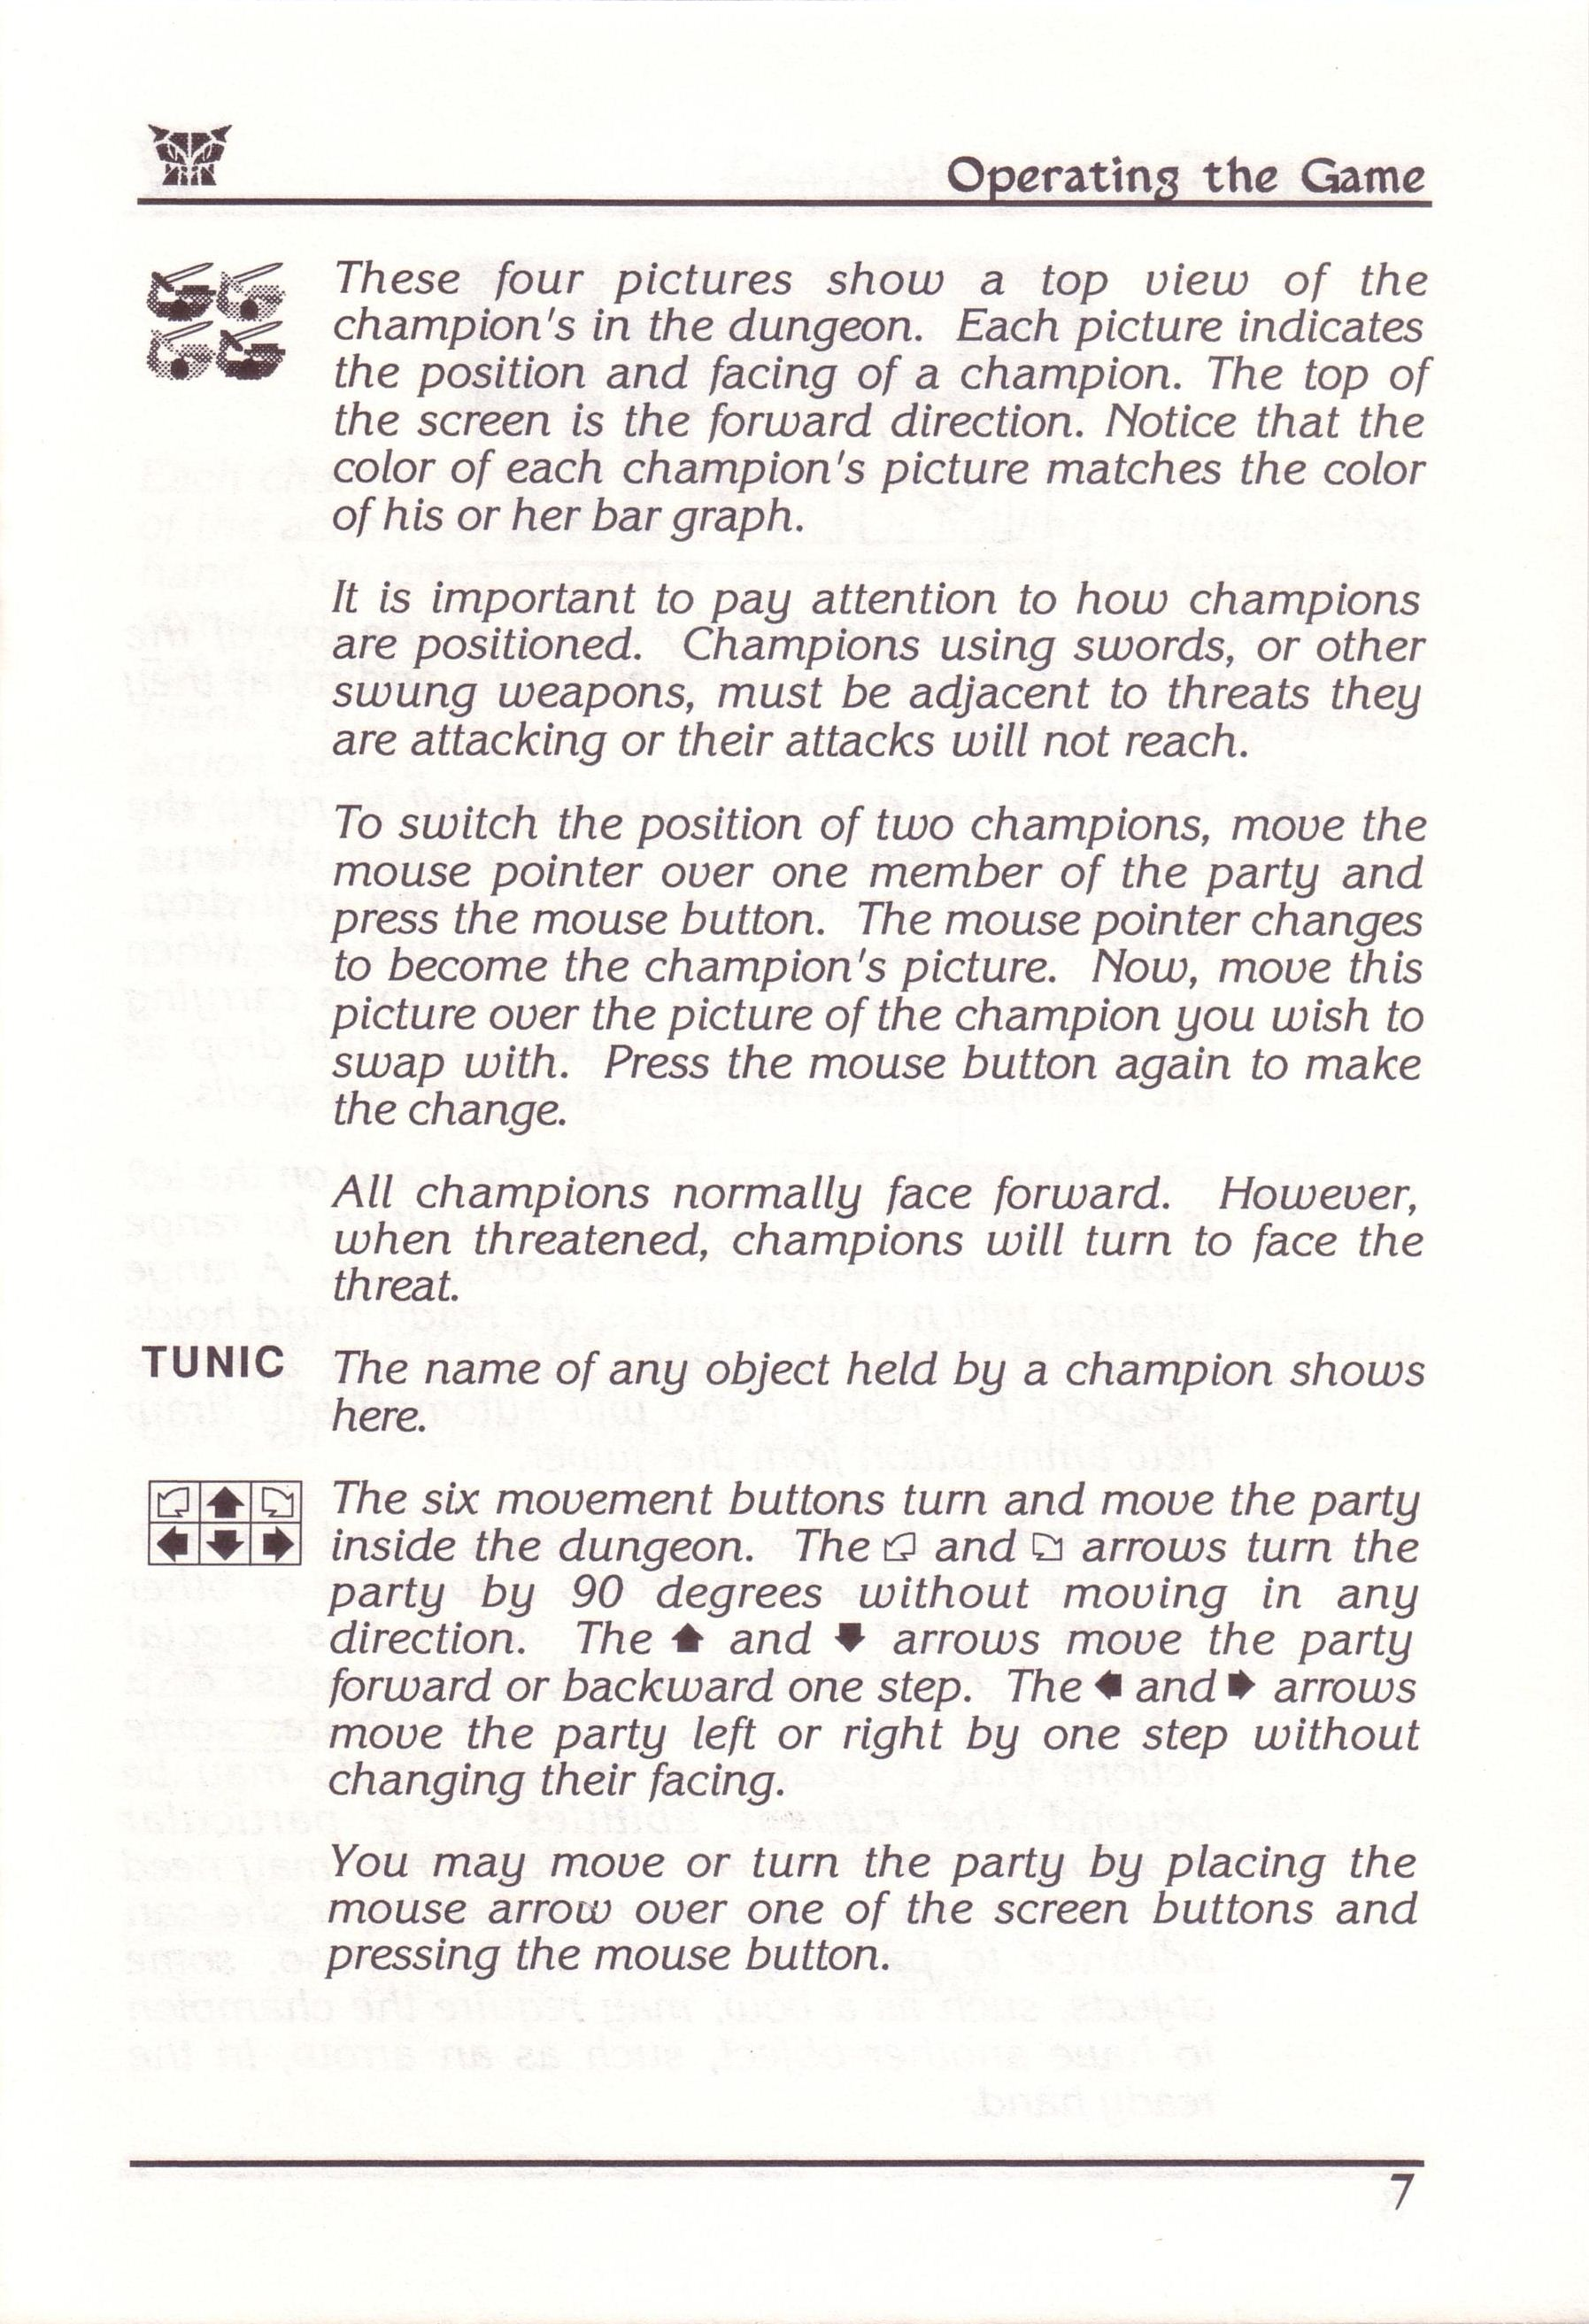 Dungeon Master for PC with FTL Sound Adapter (US Release) - Manual Page 31